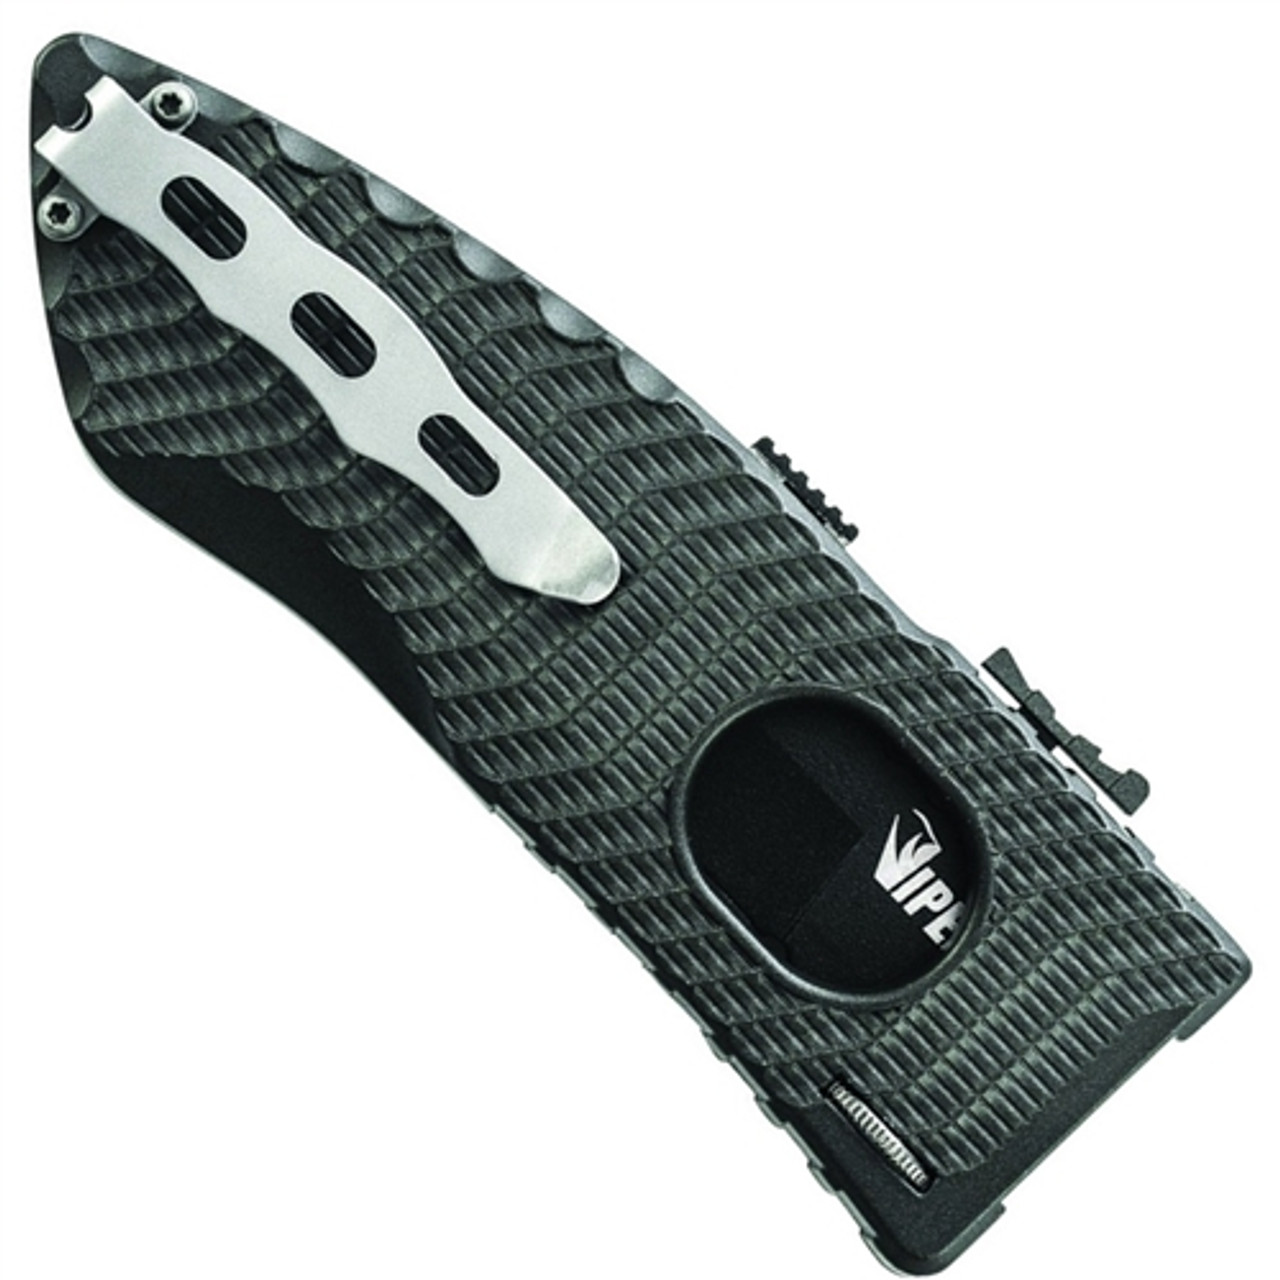 Schrade Viper Side Assist 2 Knife, Black Tanto Combo Blade